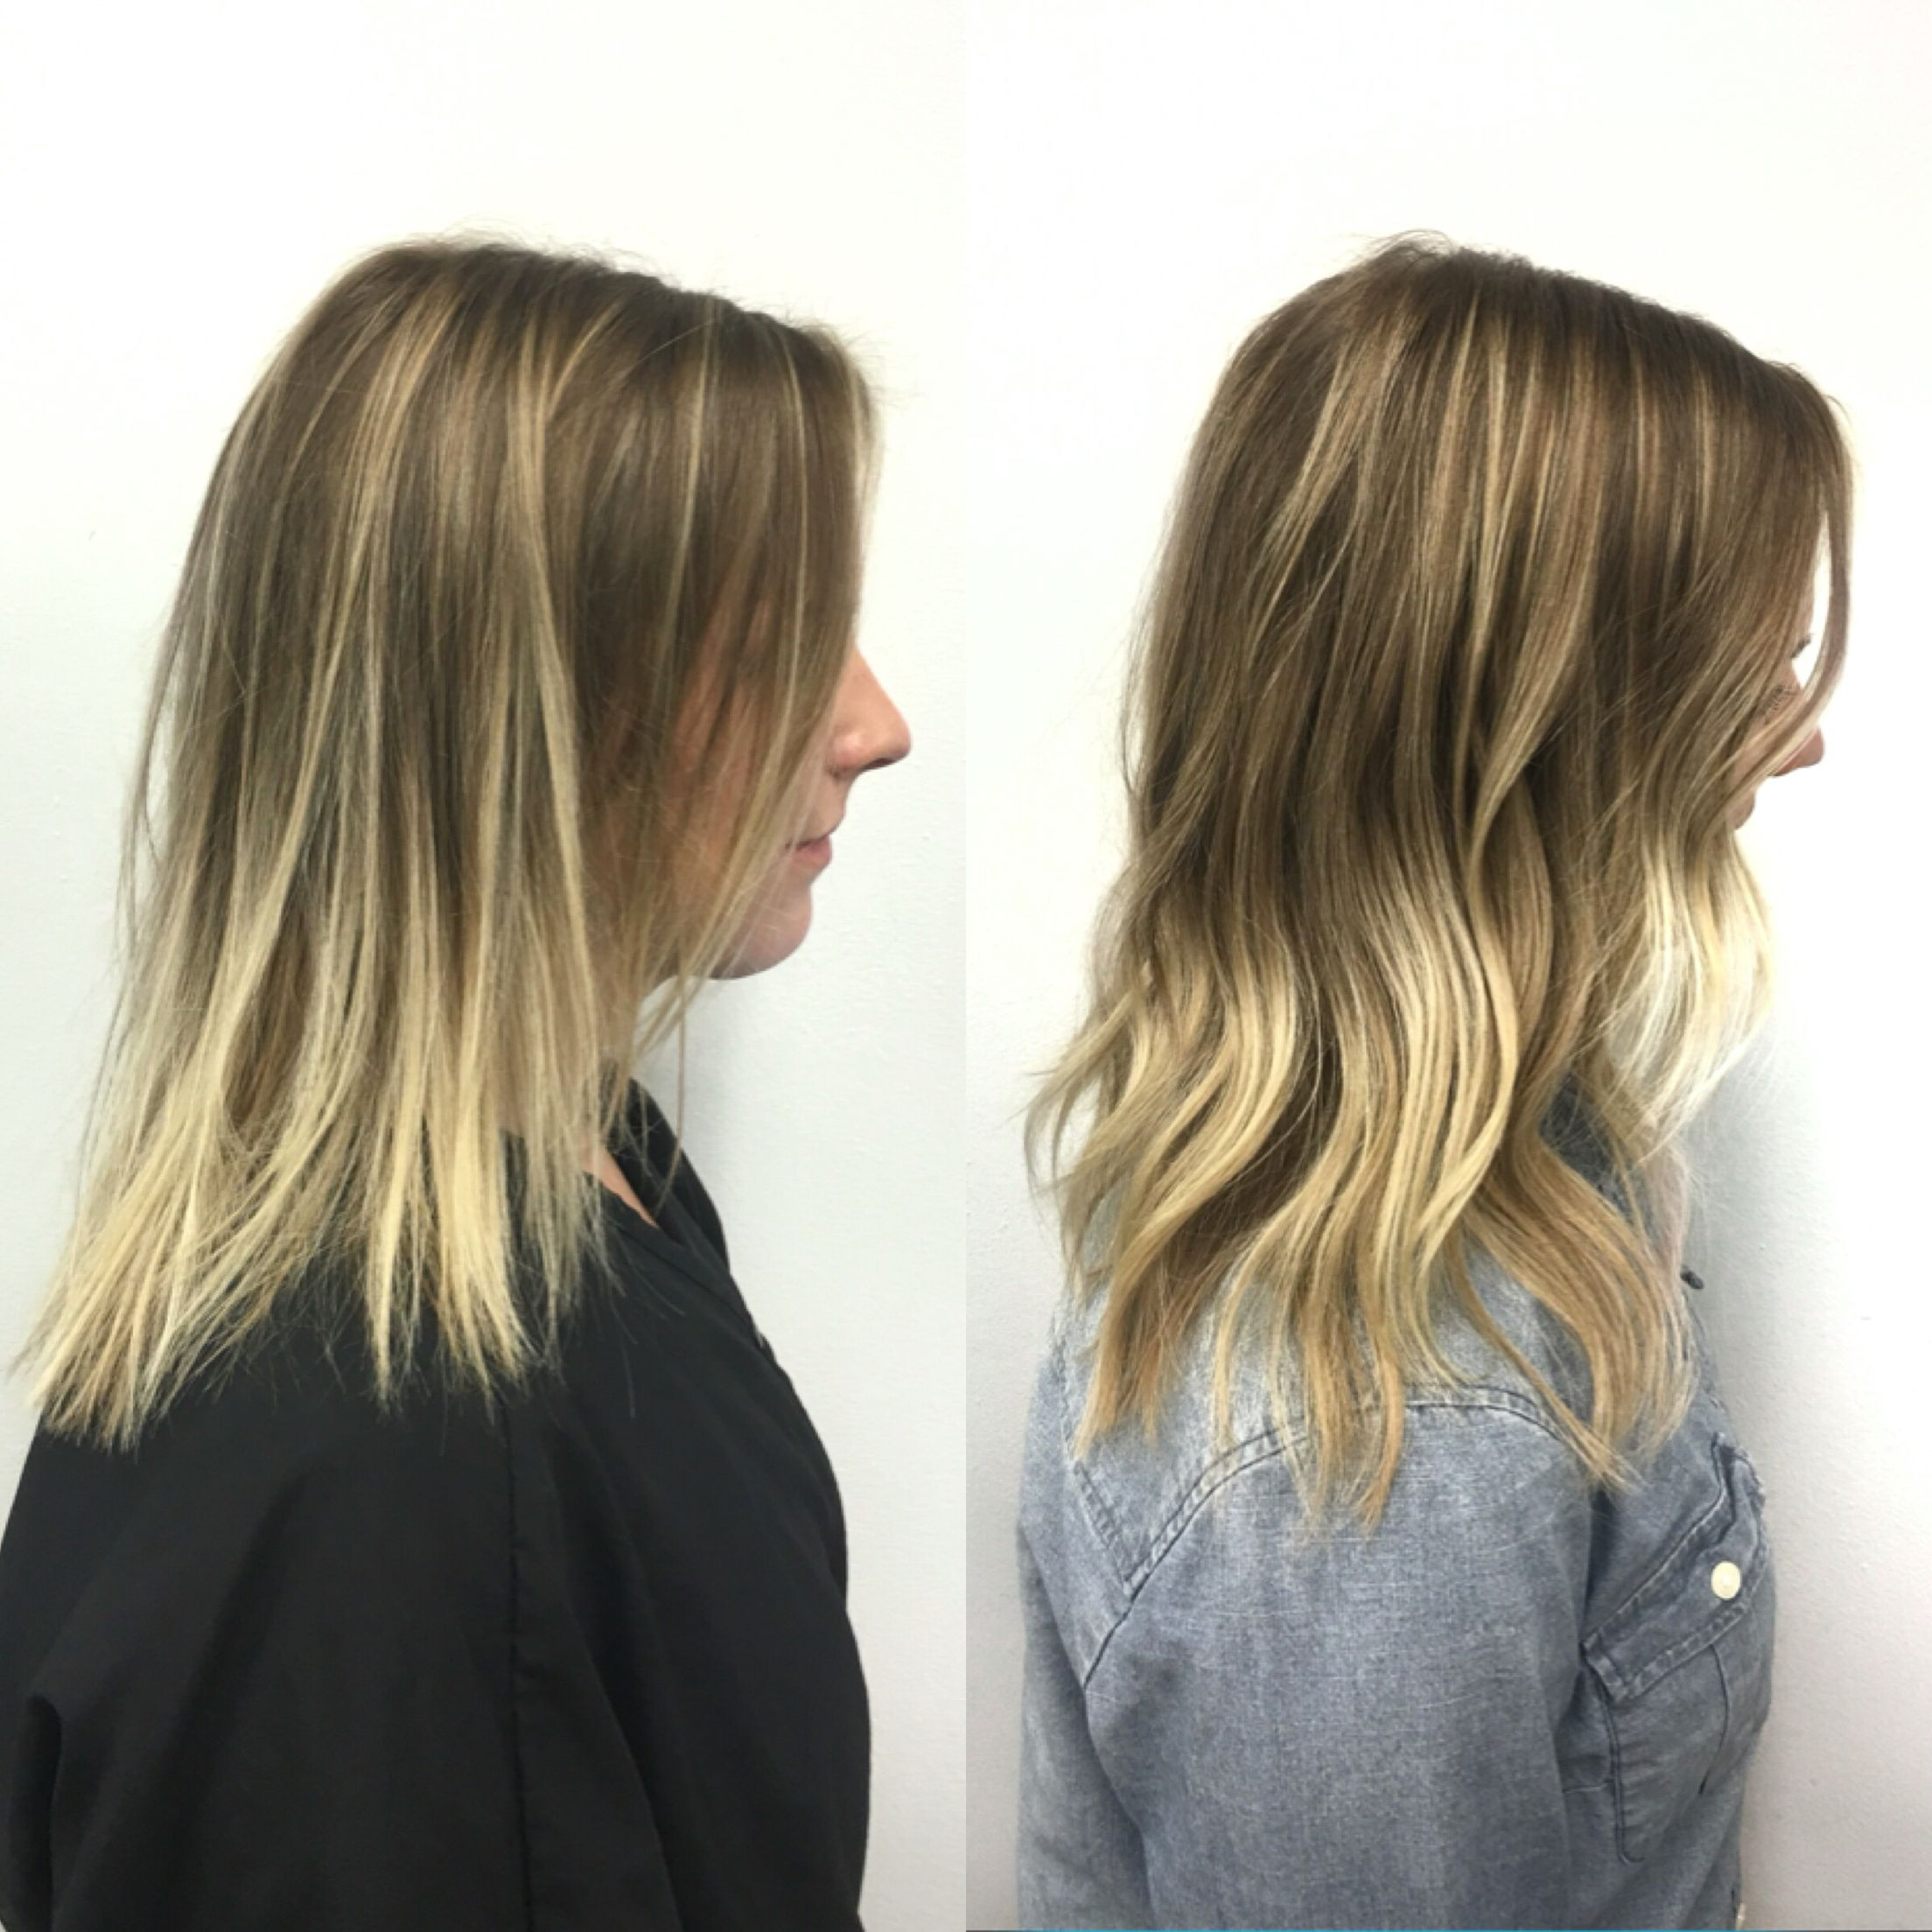 Before and after volume hair extensions by Cassandra at salon